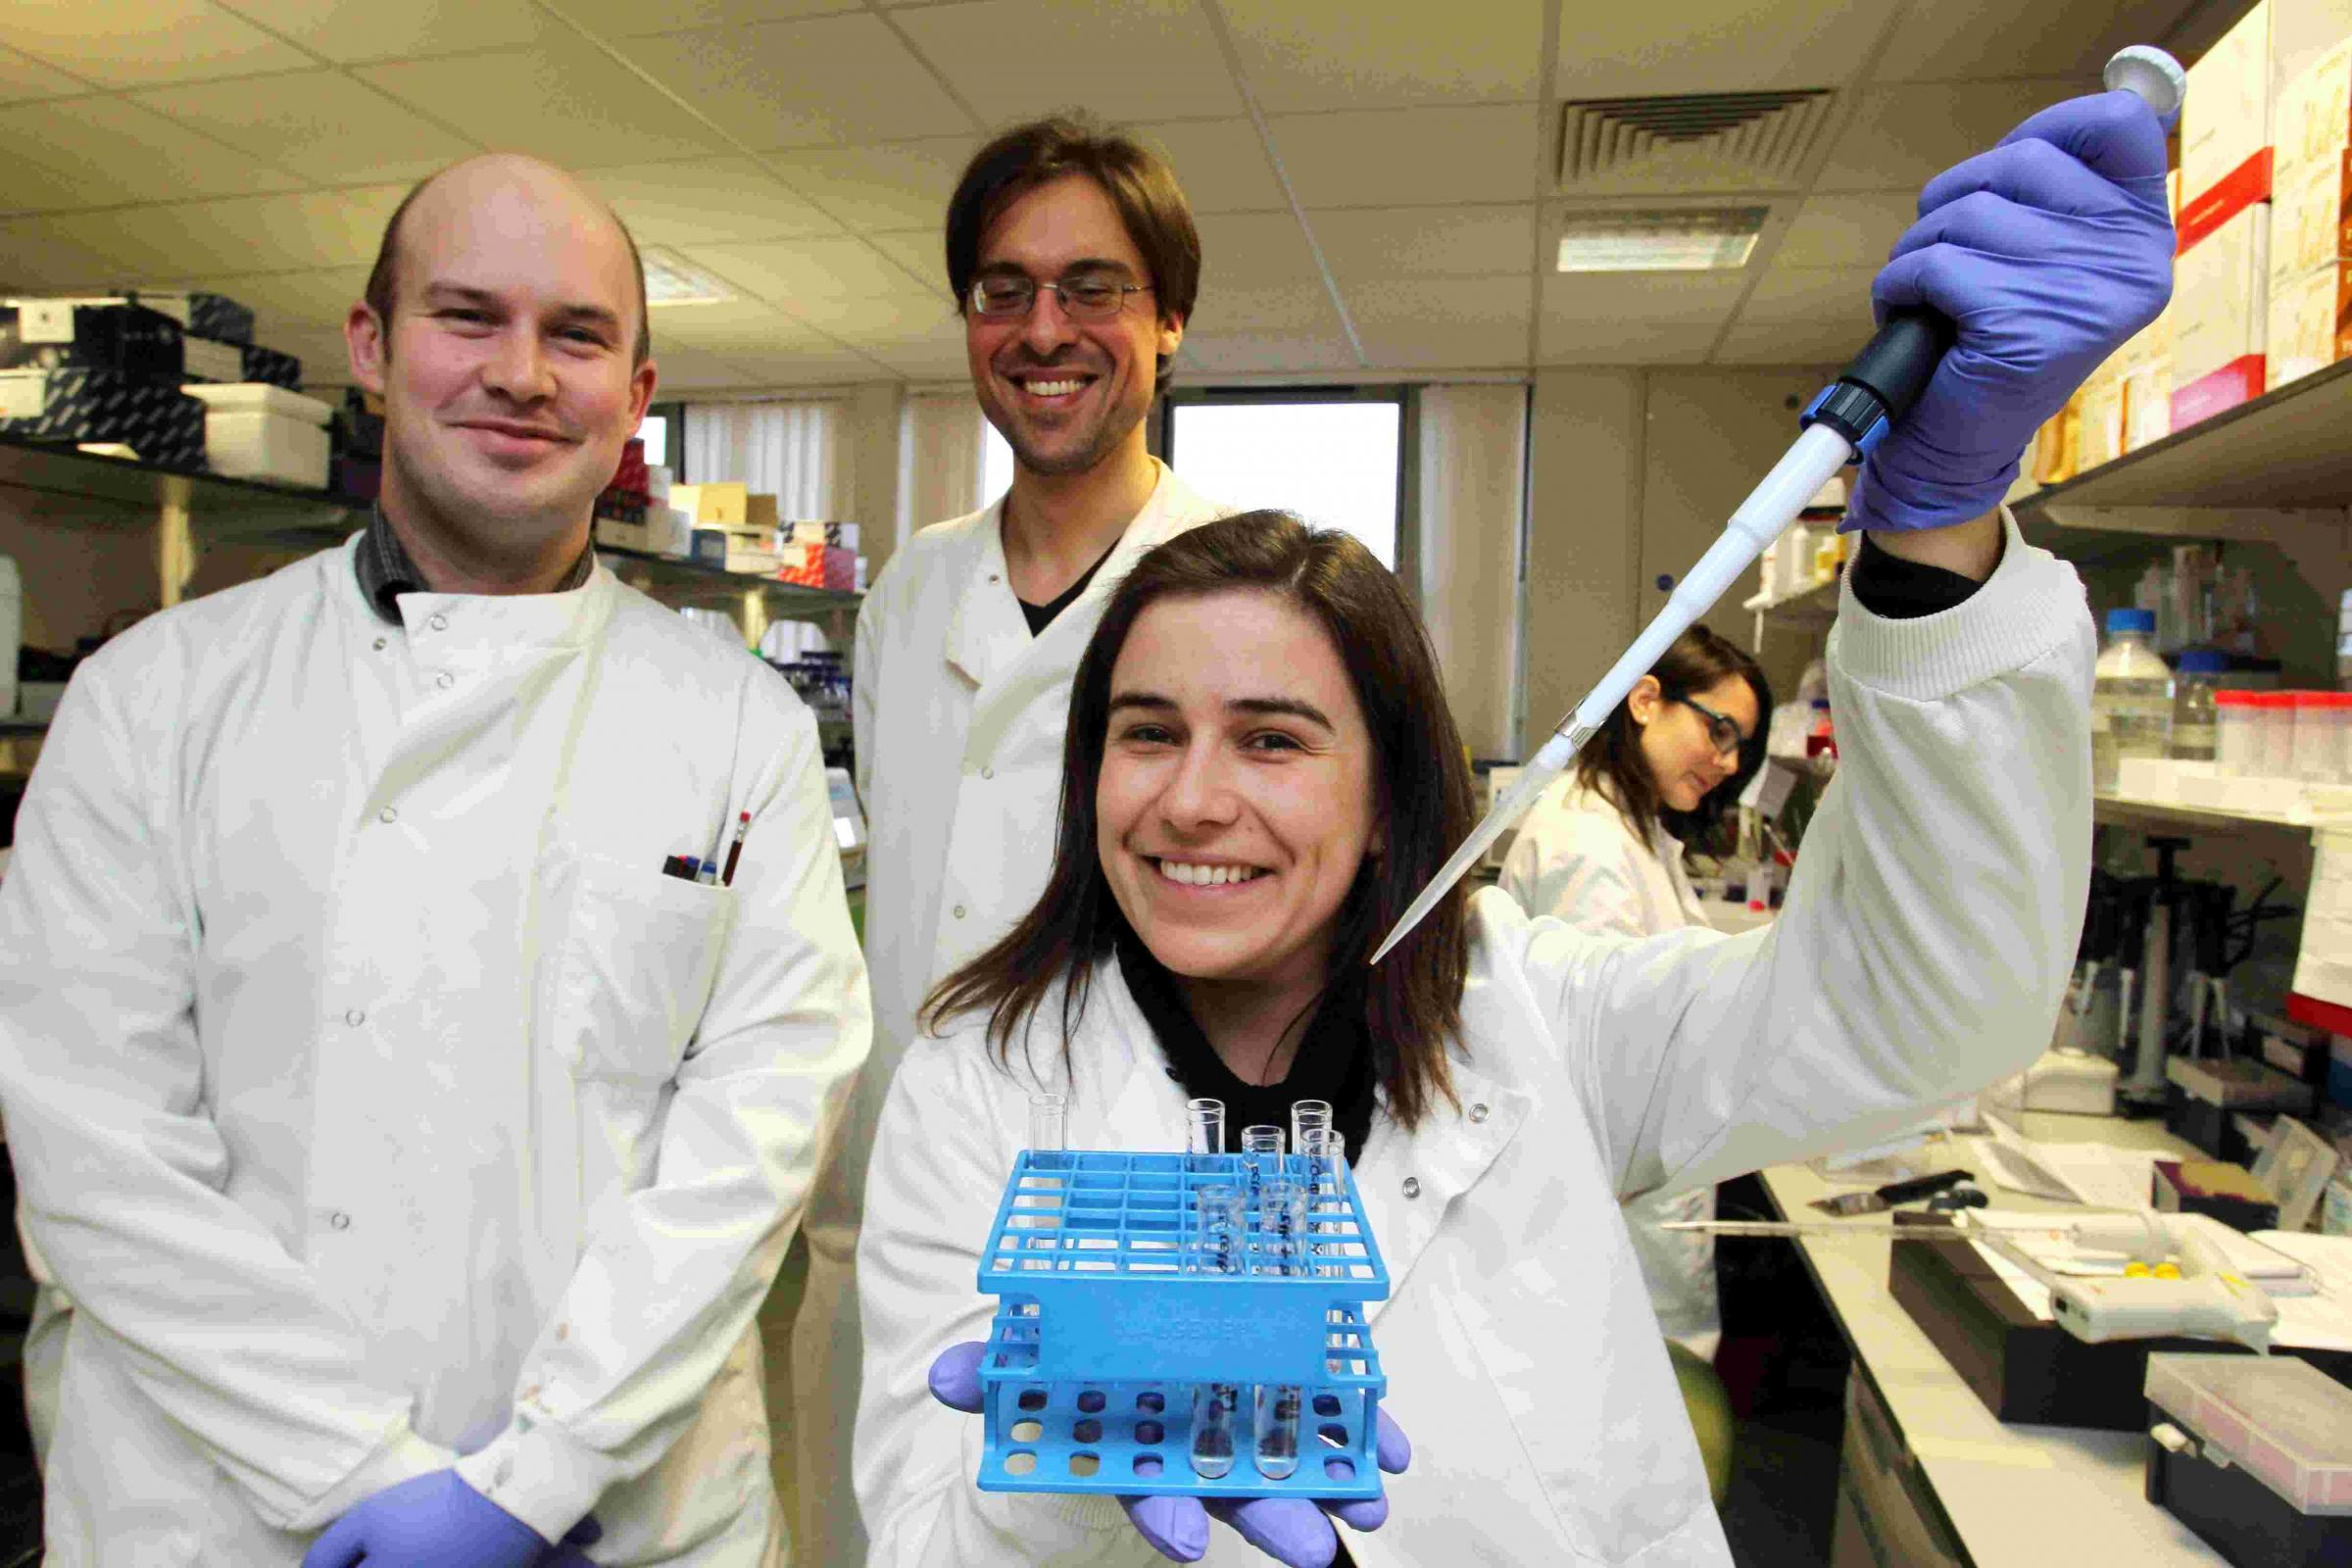 Post doctoral researchers in tumour biology, left to right, Adam Linley, Manos Papadakis and Vania Coelho.